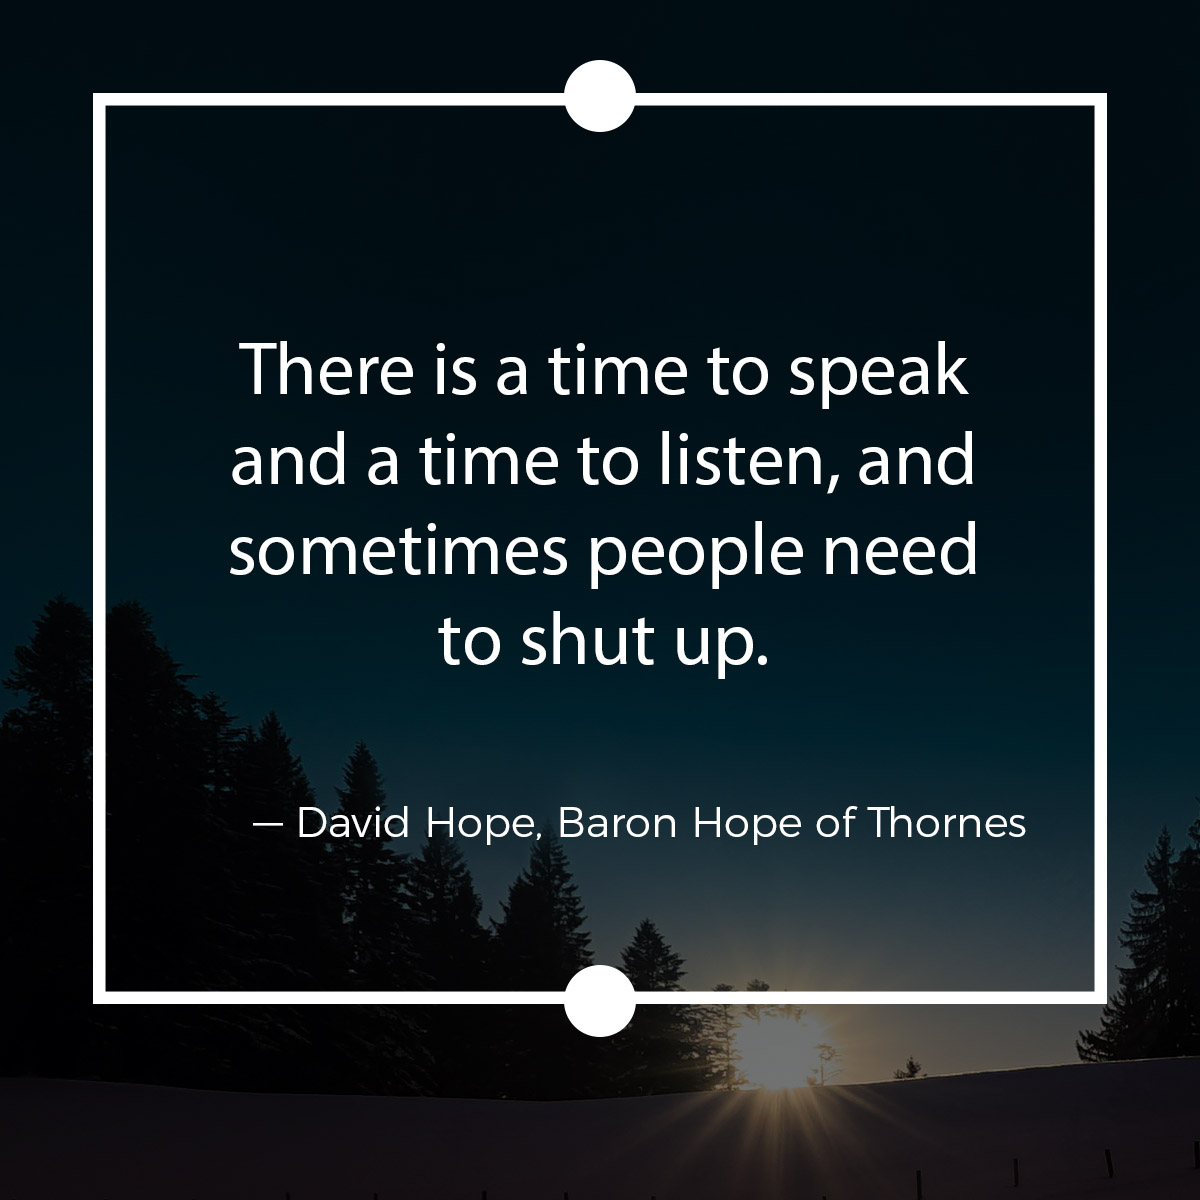 There is a time to speak and a time to listen, and sometimes people need to shut up.